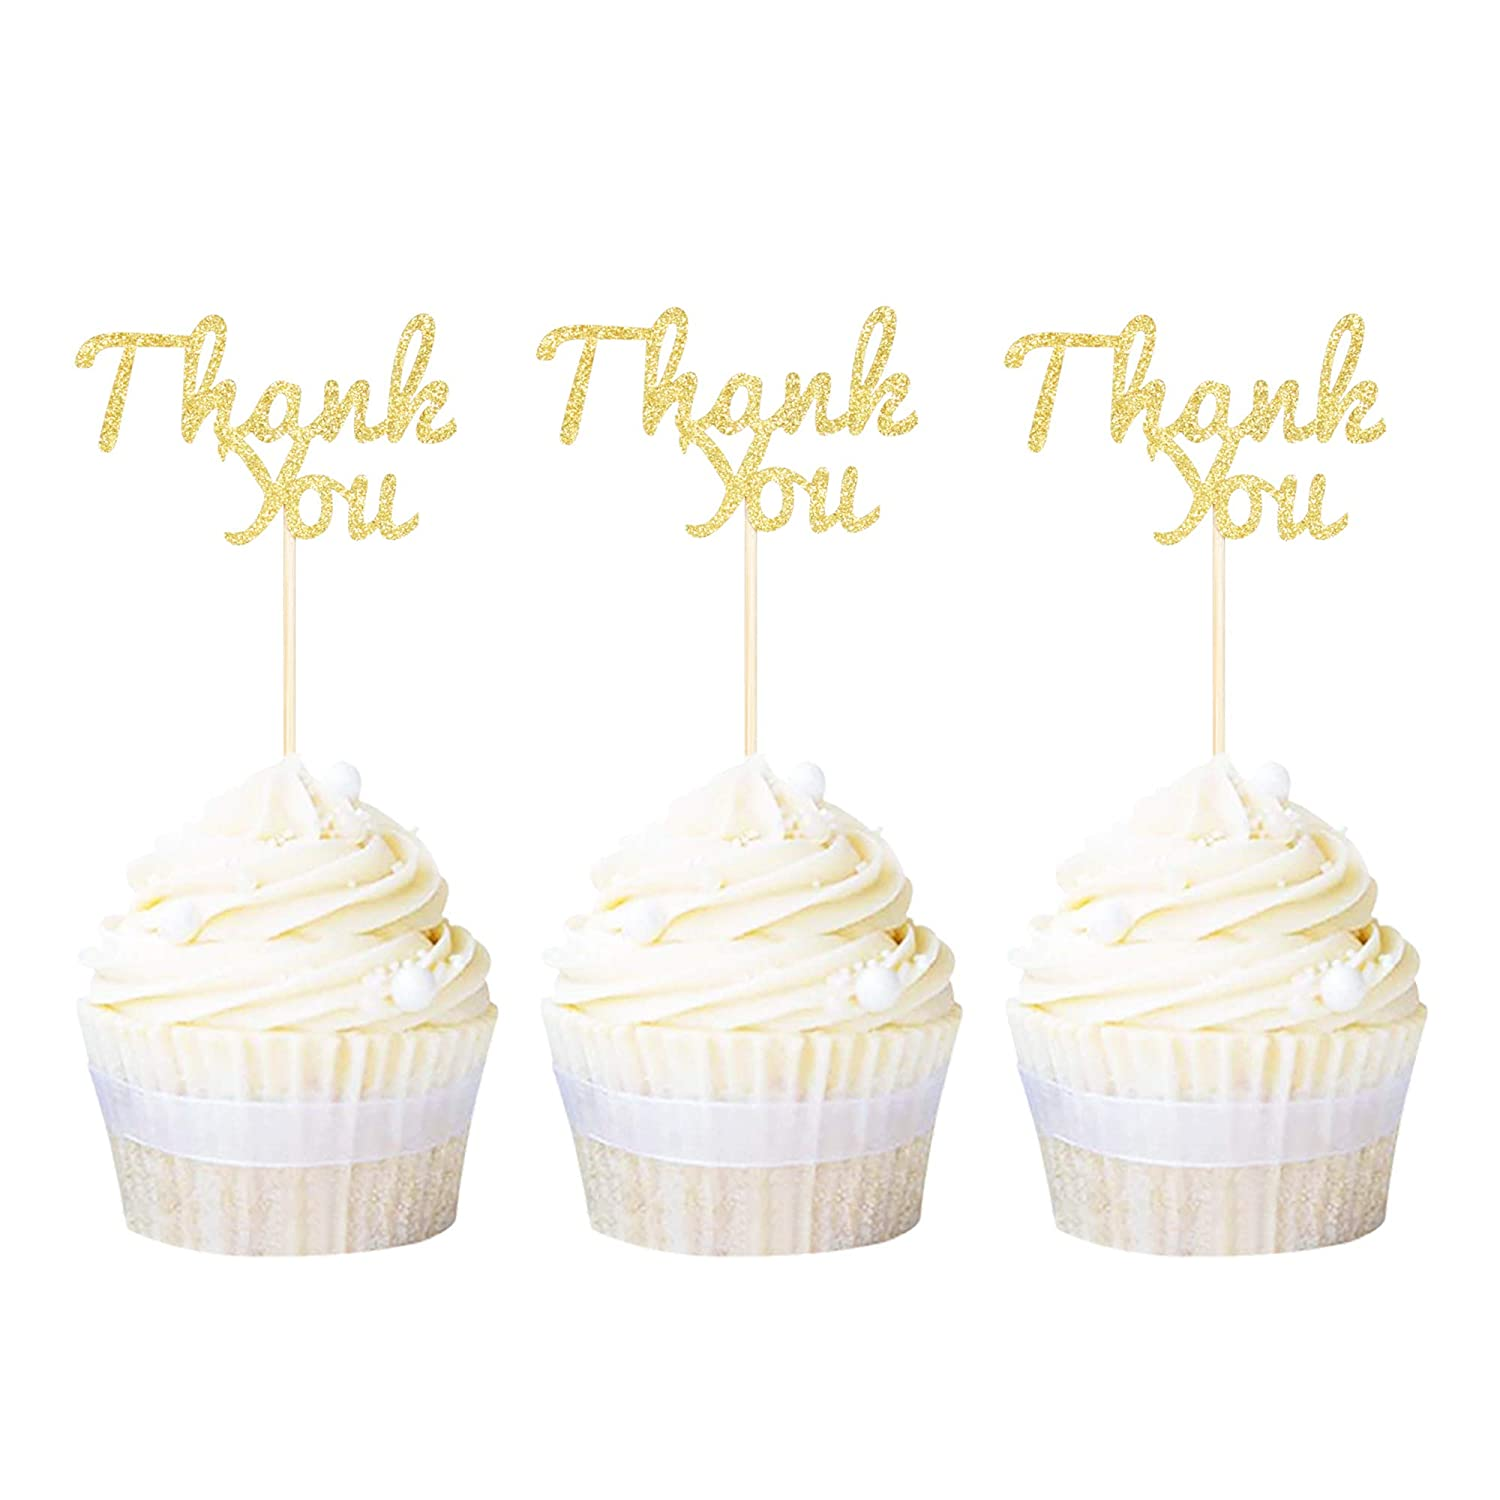 Ercadio 24 Pack Gold Glitter Letter Thank You Cupcake Toppers Thanksgiving Cupcake Picks Baby Shower Kids Birthday Party Cake Decorations…